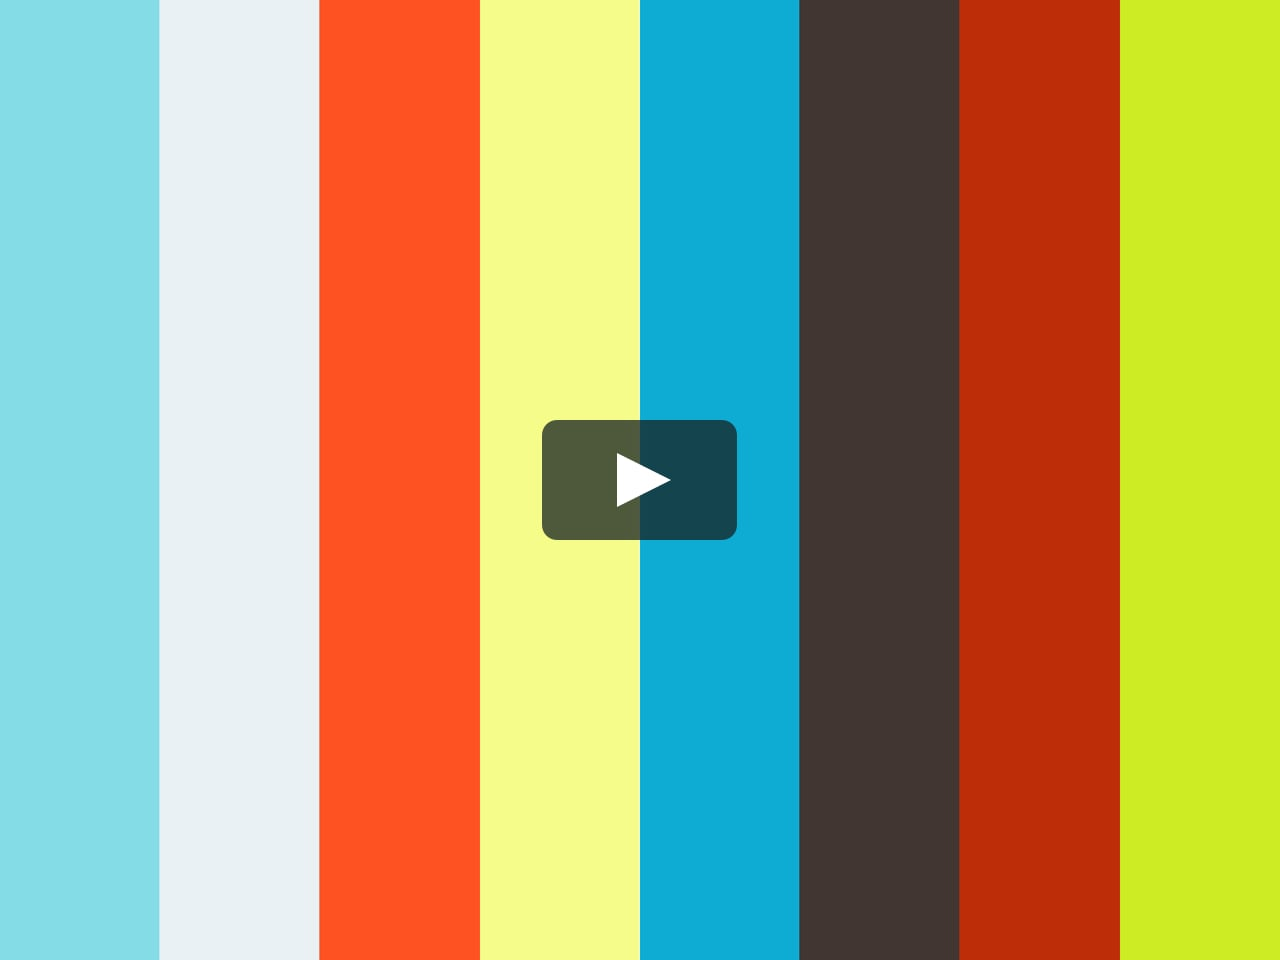 Year 1 - Week 10 - Lesson 1 - Ordering numbers on Vimeo